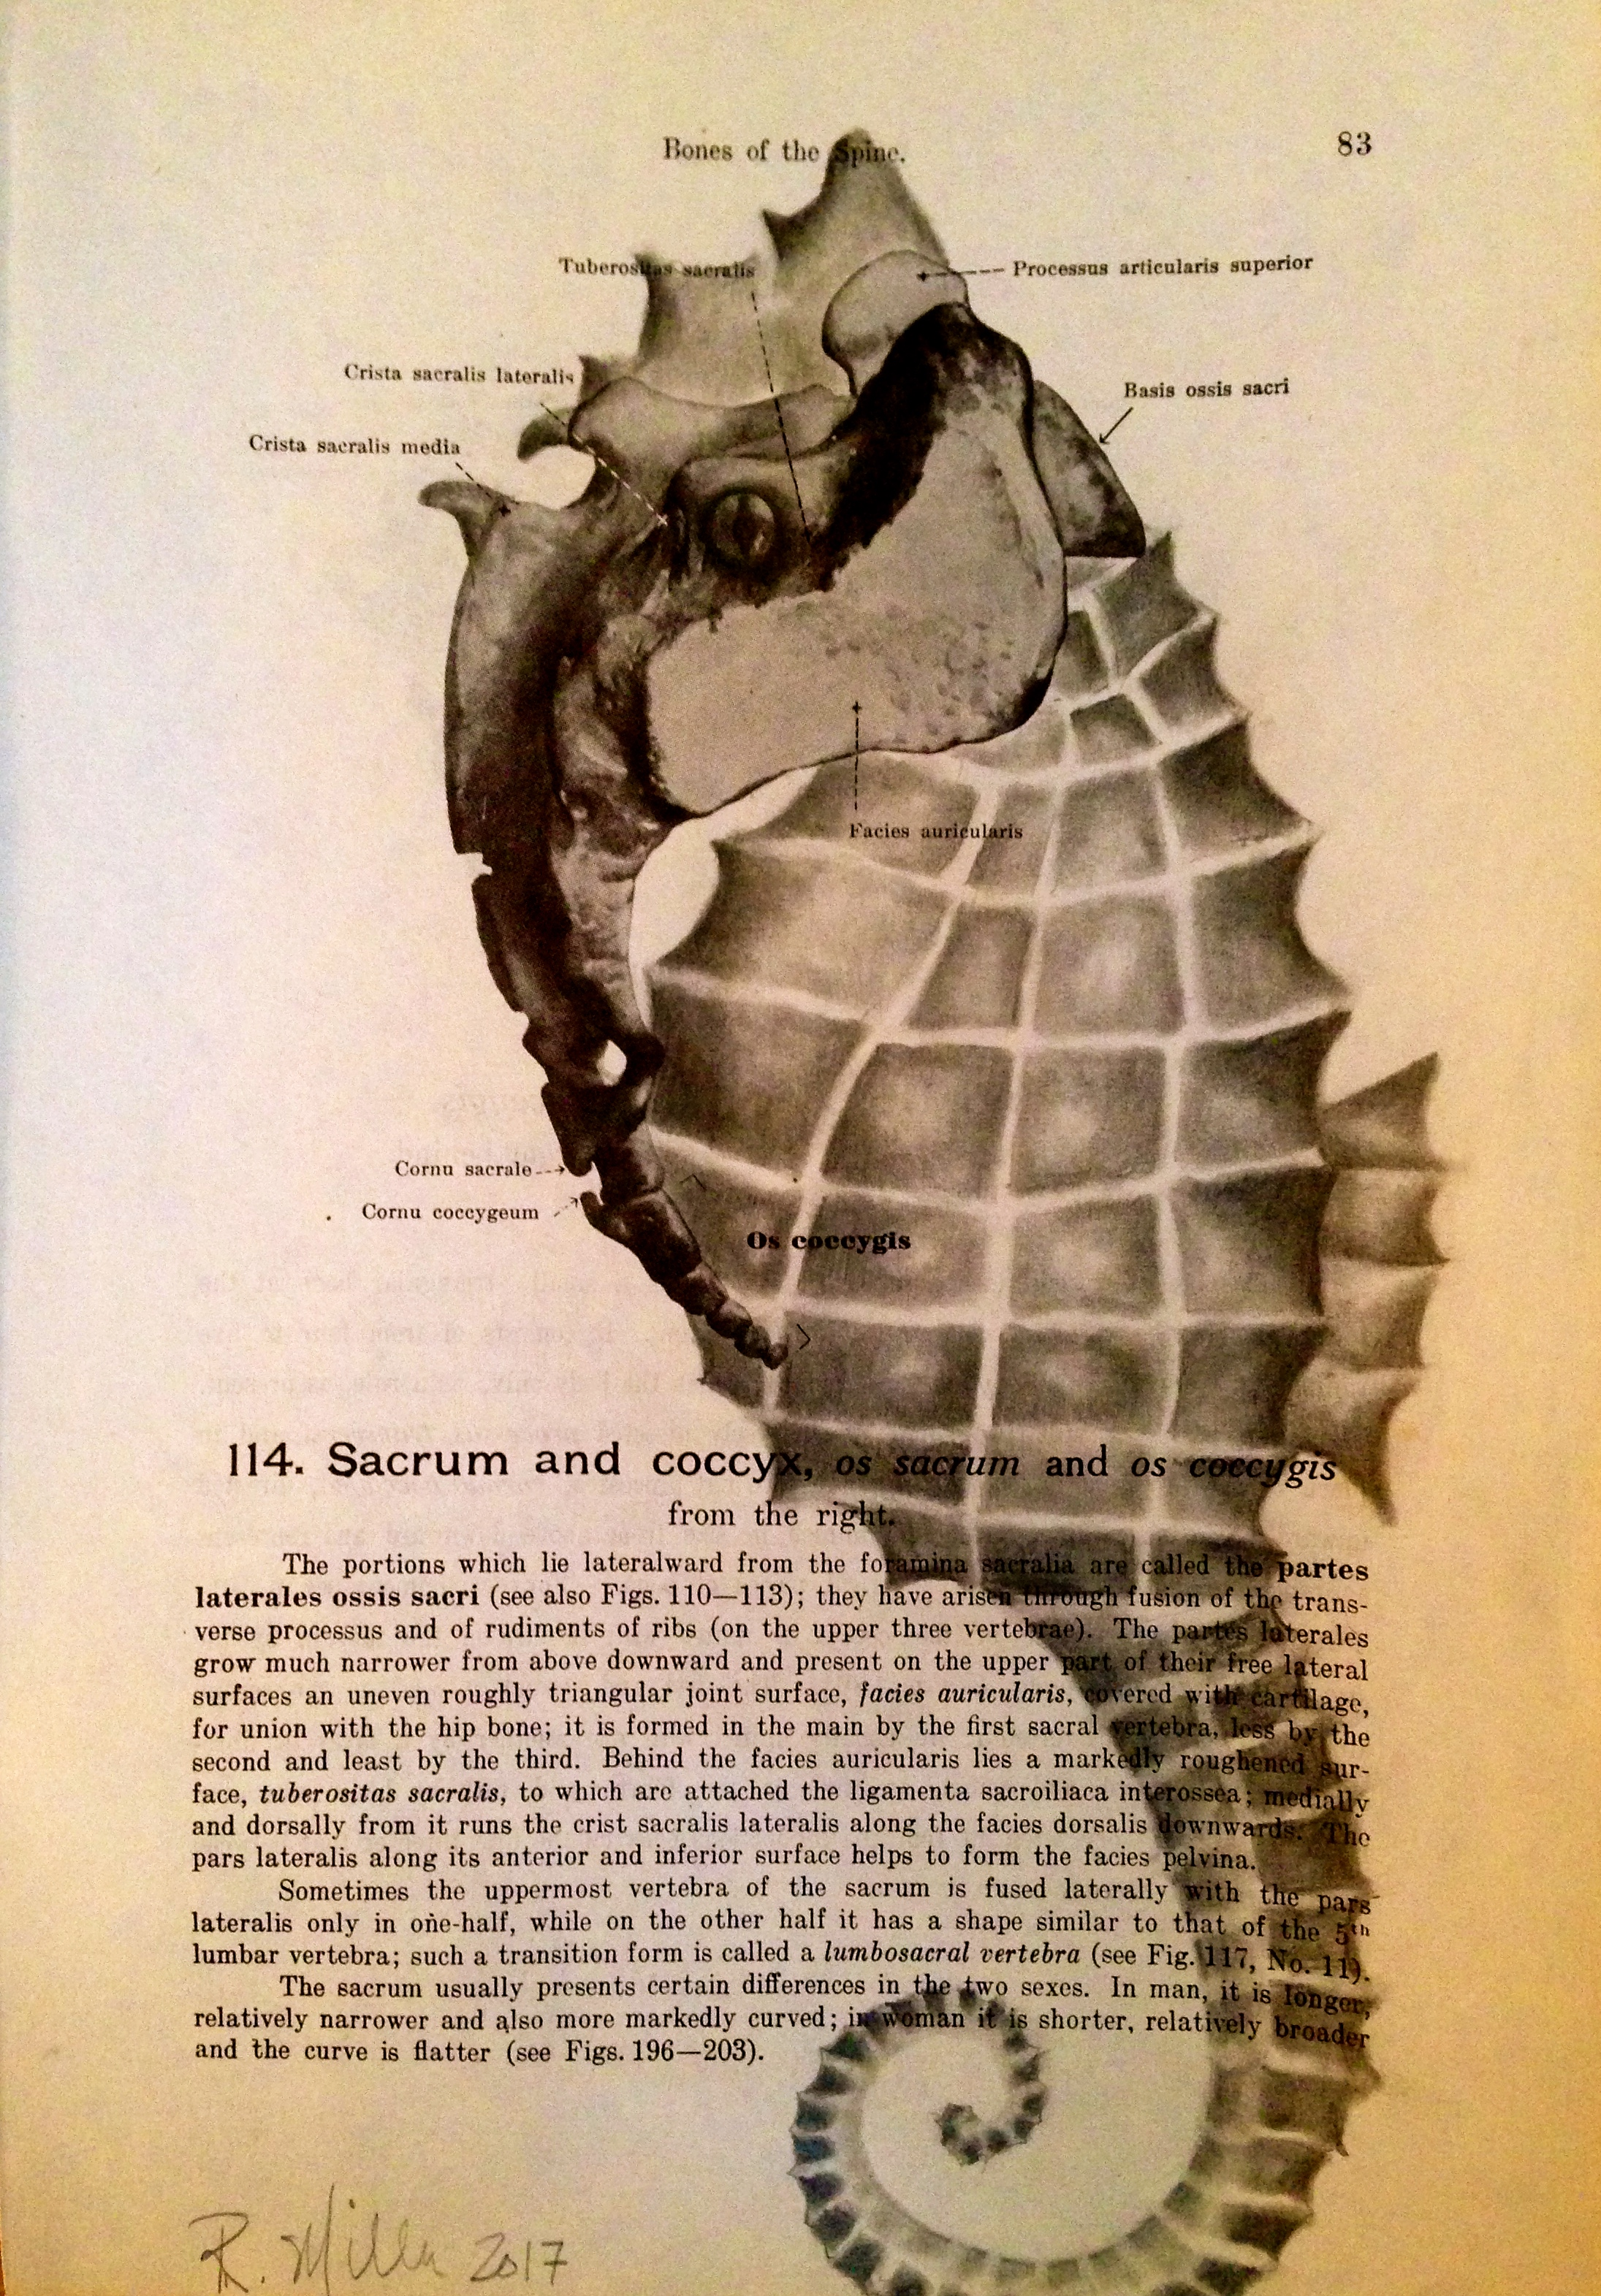 1861 Anatomy paper for Sacrum, I see Seahorse    Spiny Seahorse, 2017   Charcoal on antique 1861 medical paper